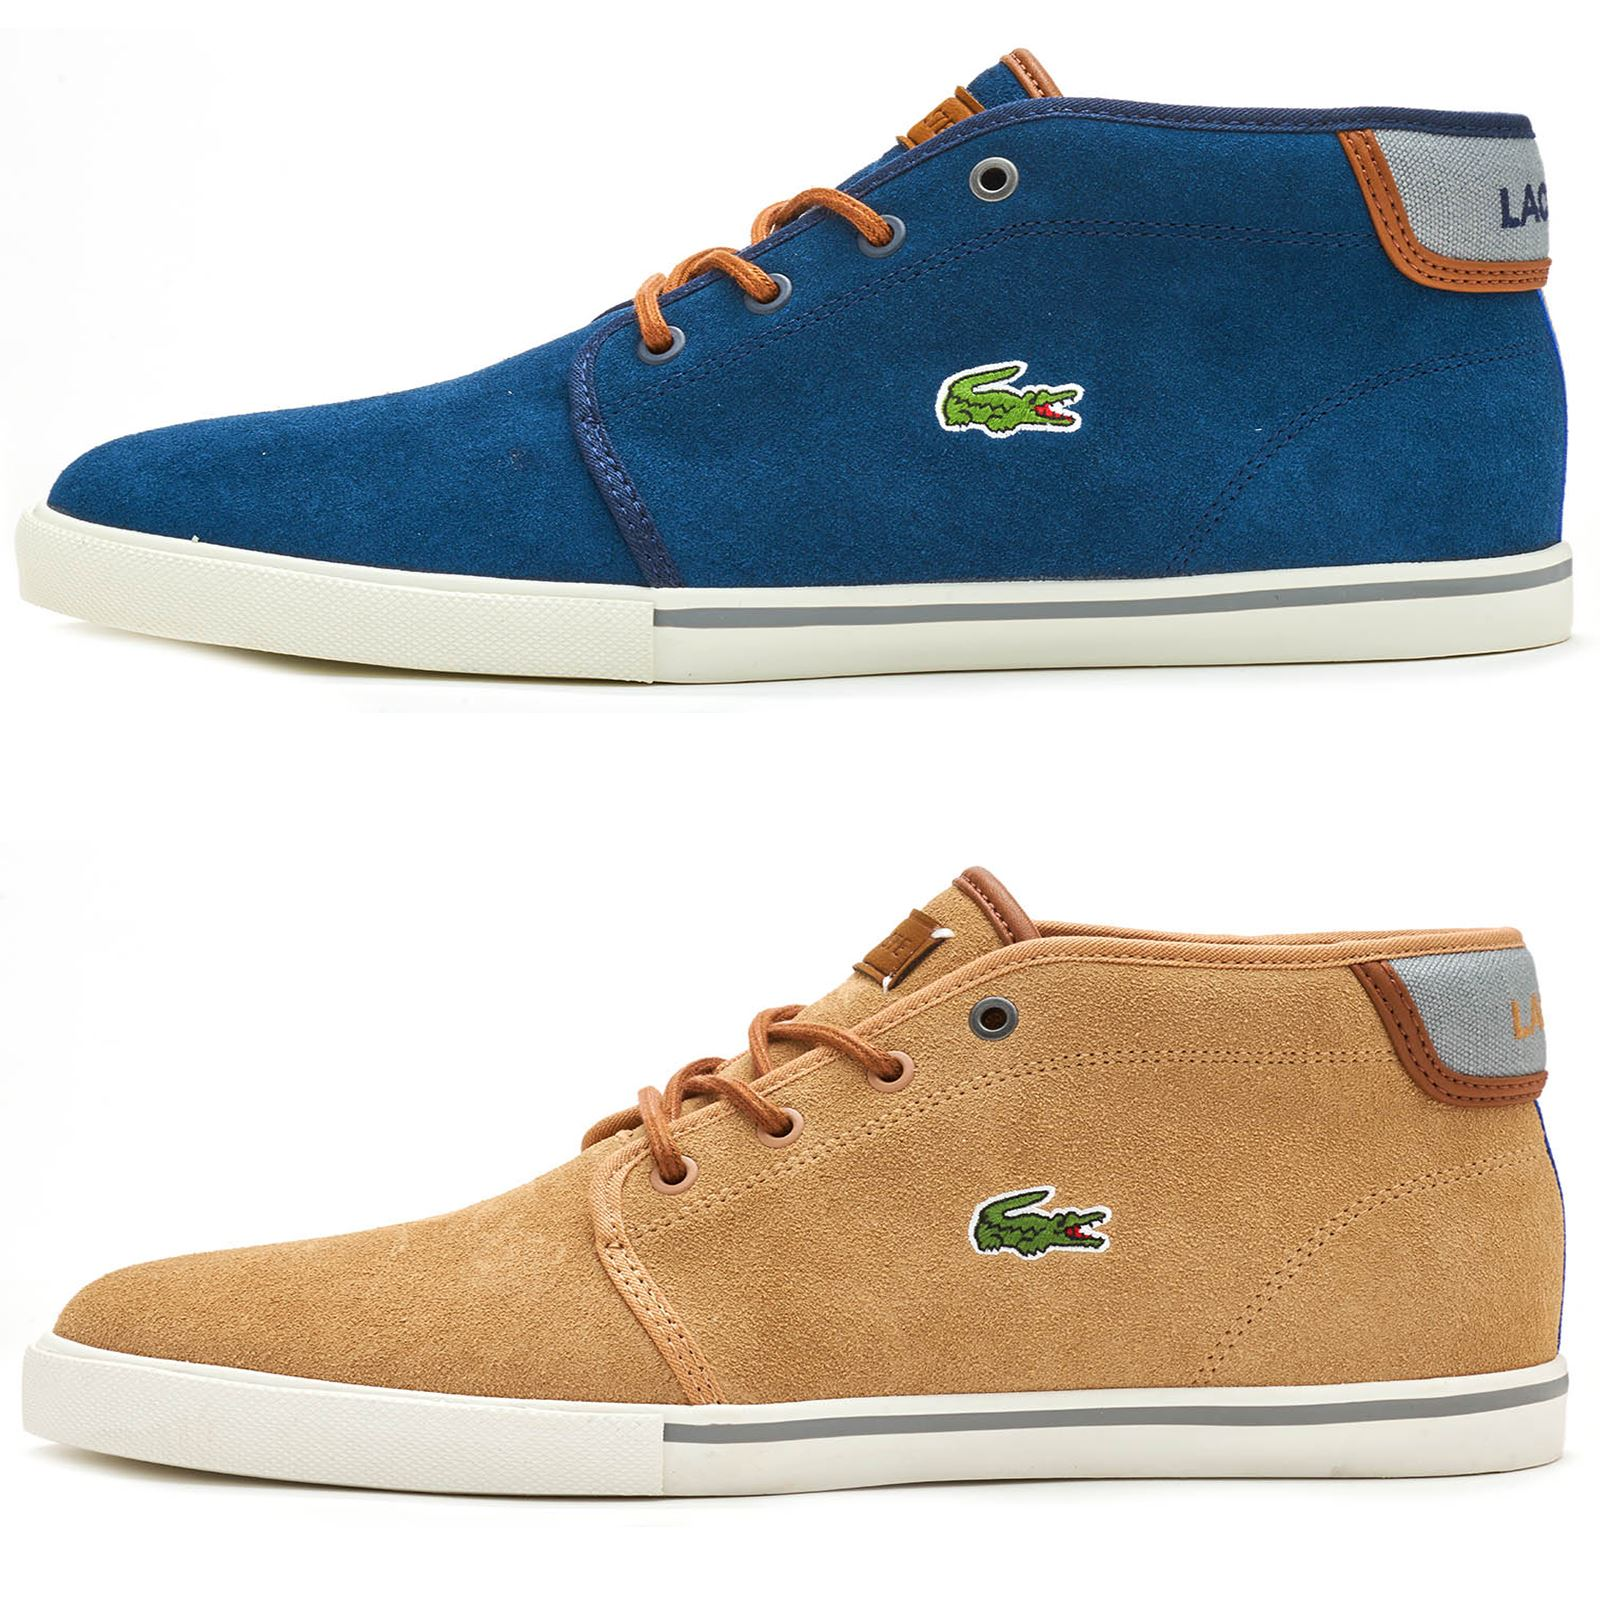 Lacoste Ampthill Chukka Ankle Suede